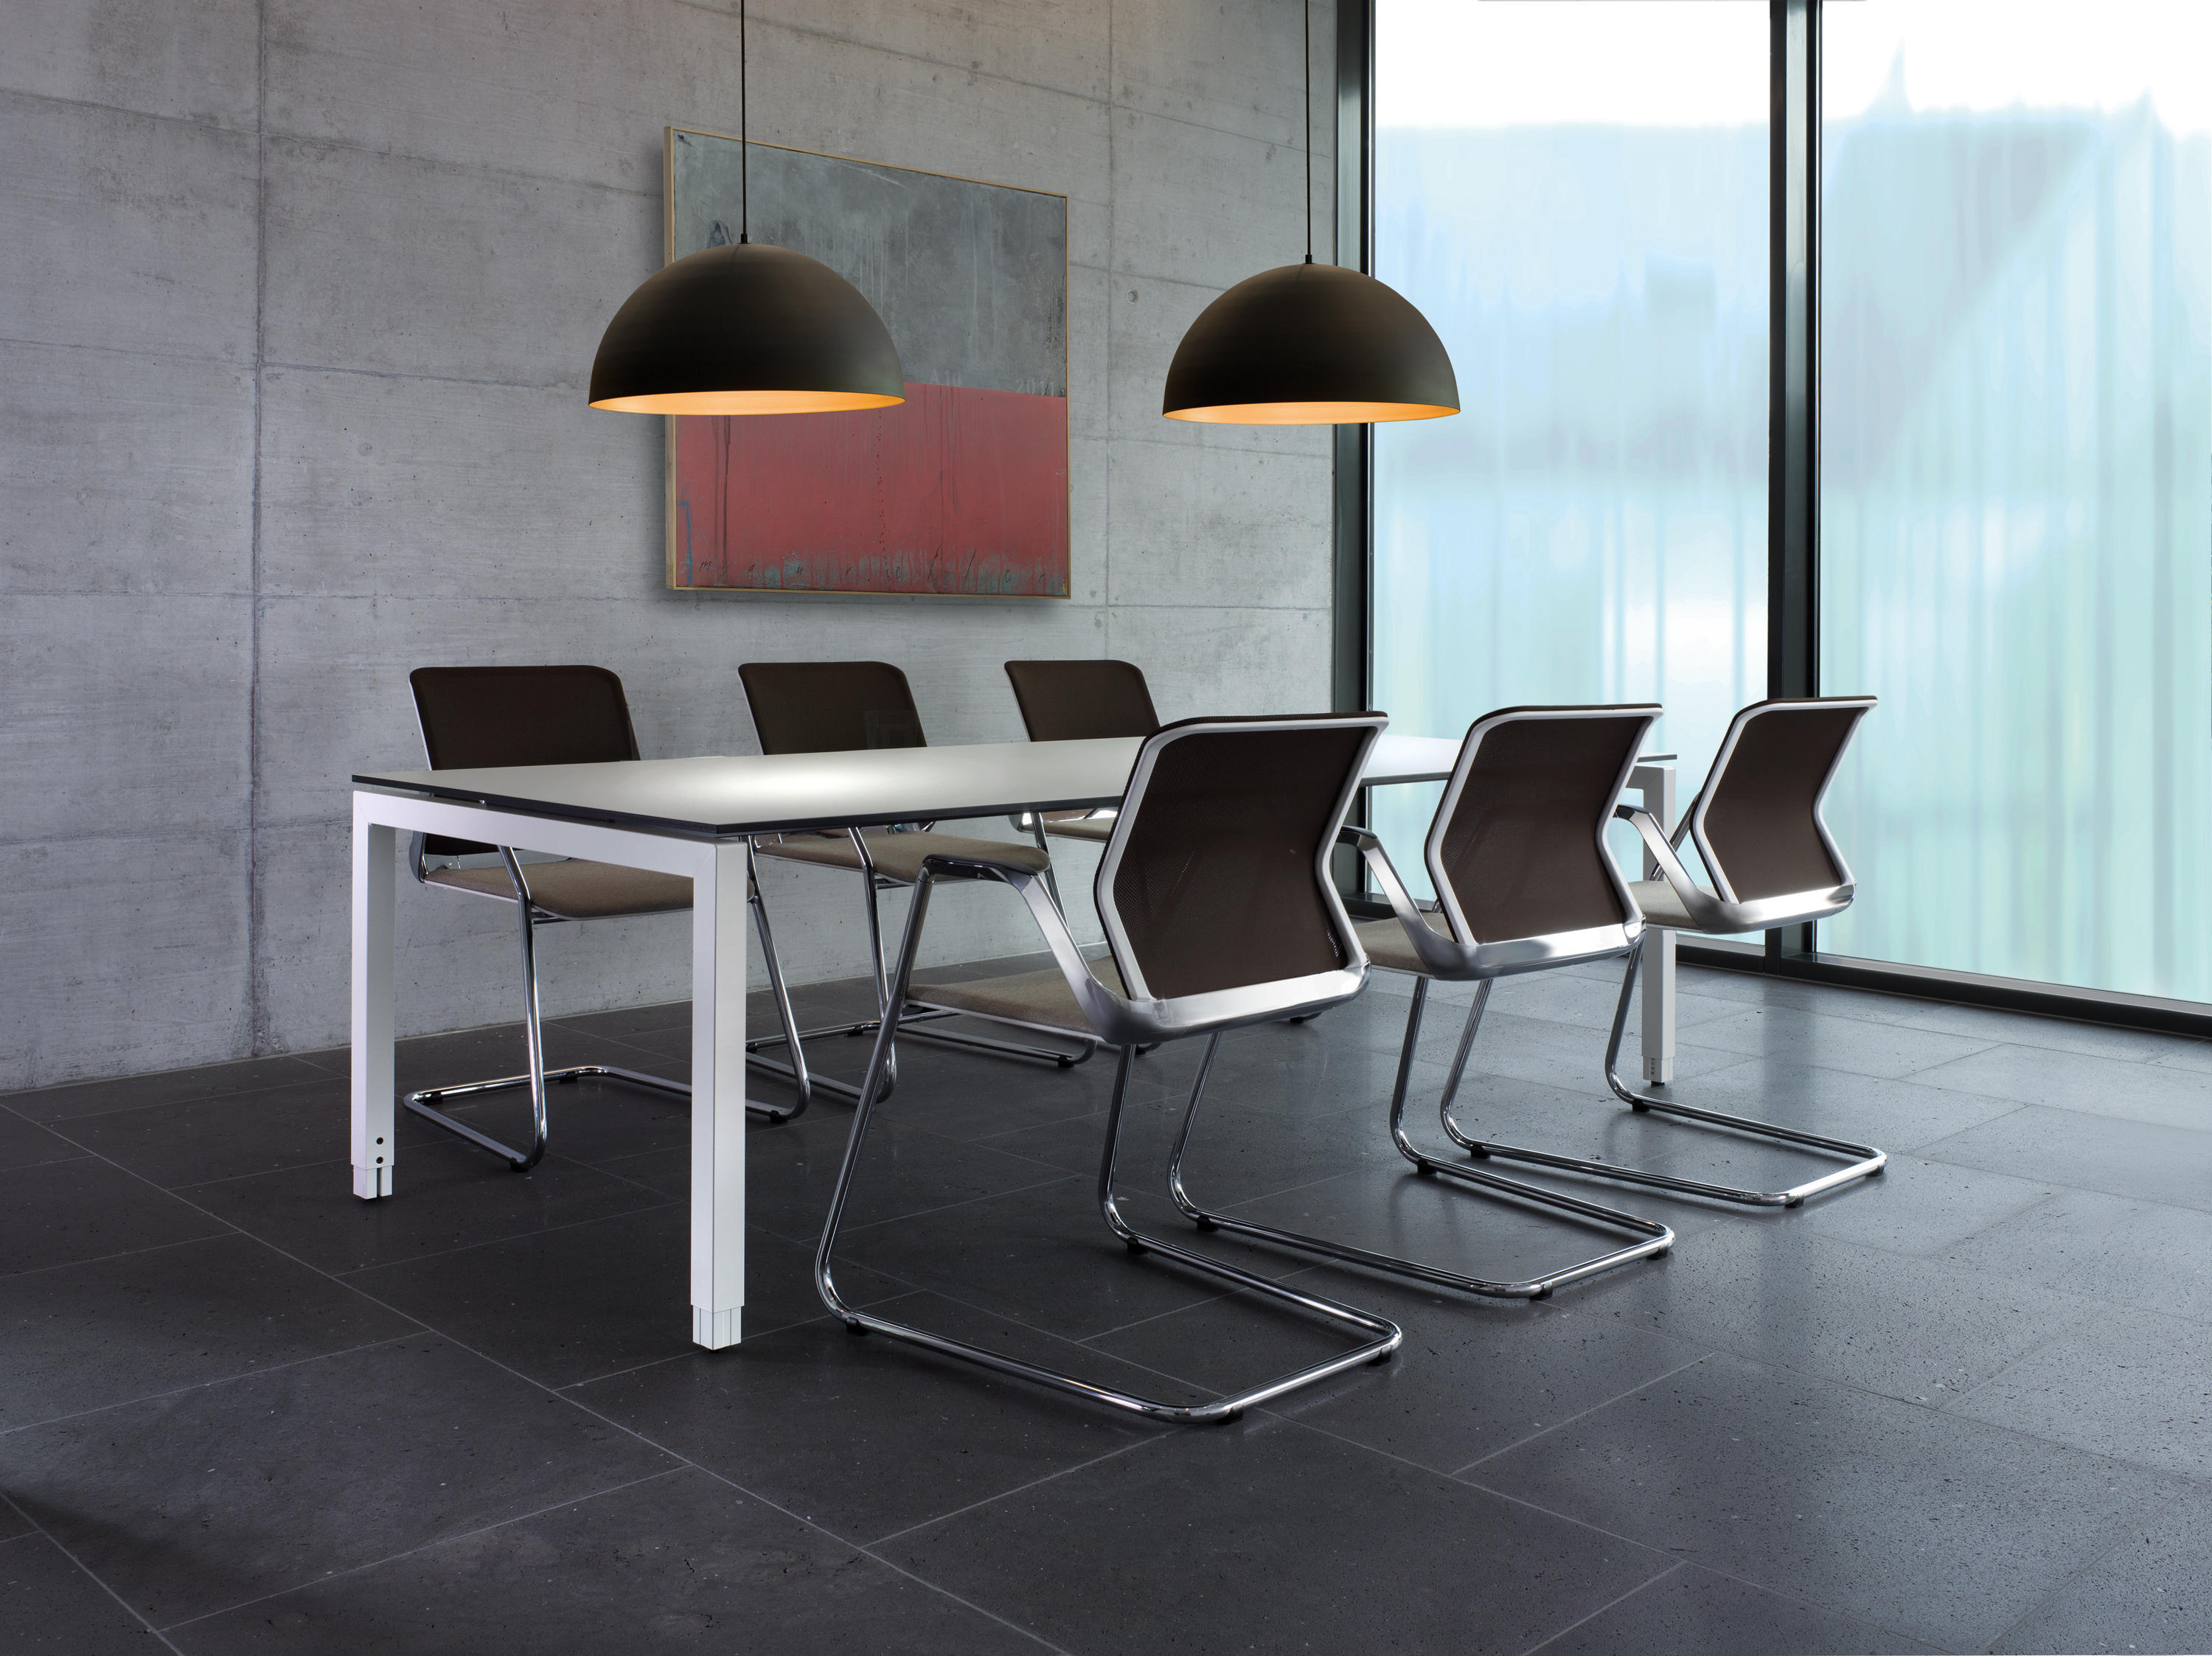 SITAGTEAM - Task chairs from Sitag | Architonic